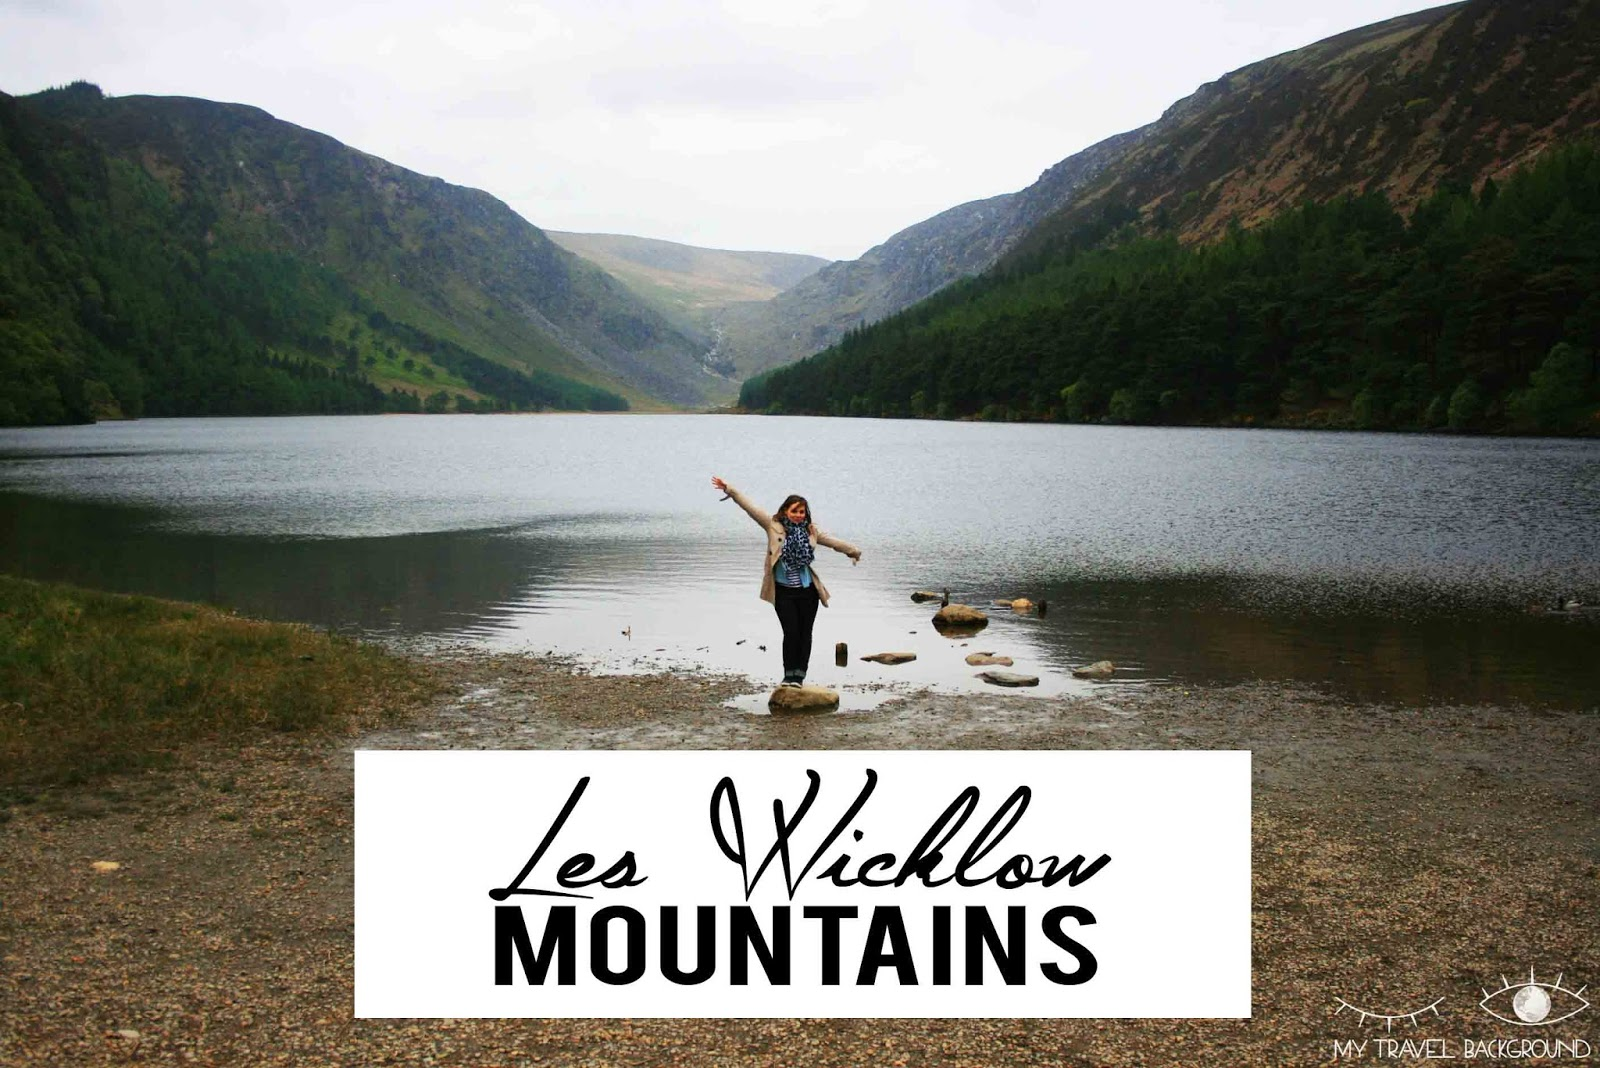 My Travel Background : les Wicklow Moutains, à 1 heure de Dublin